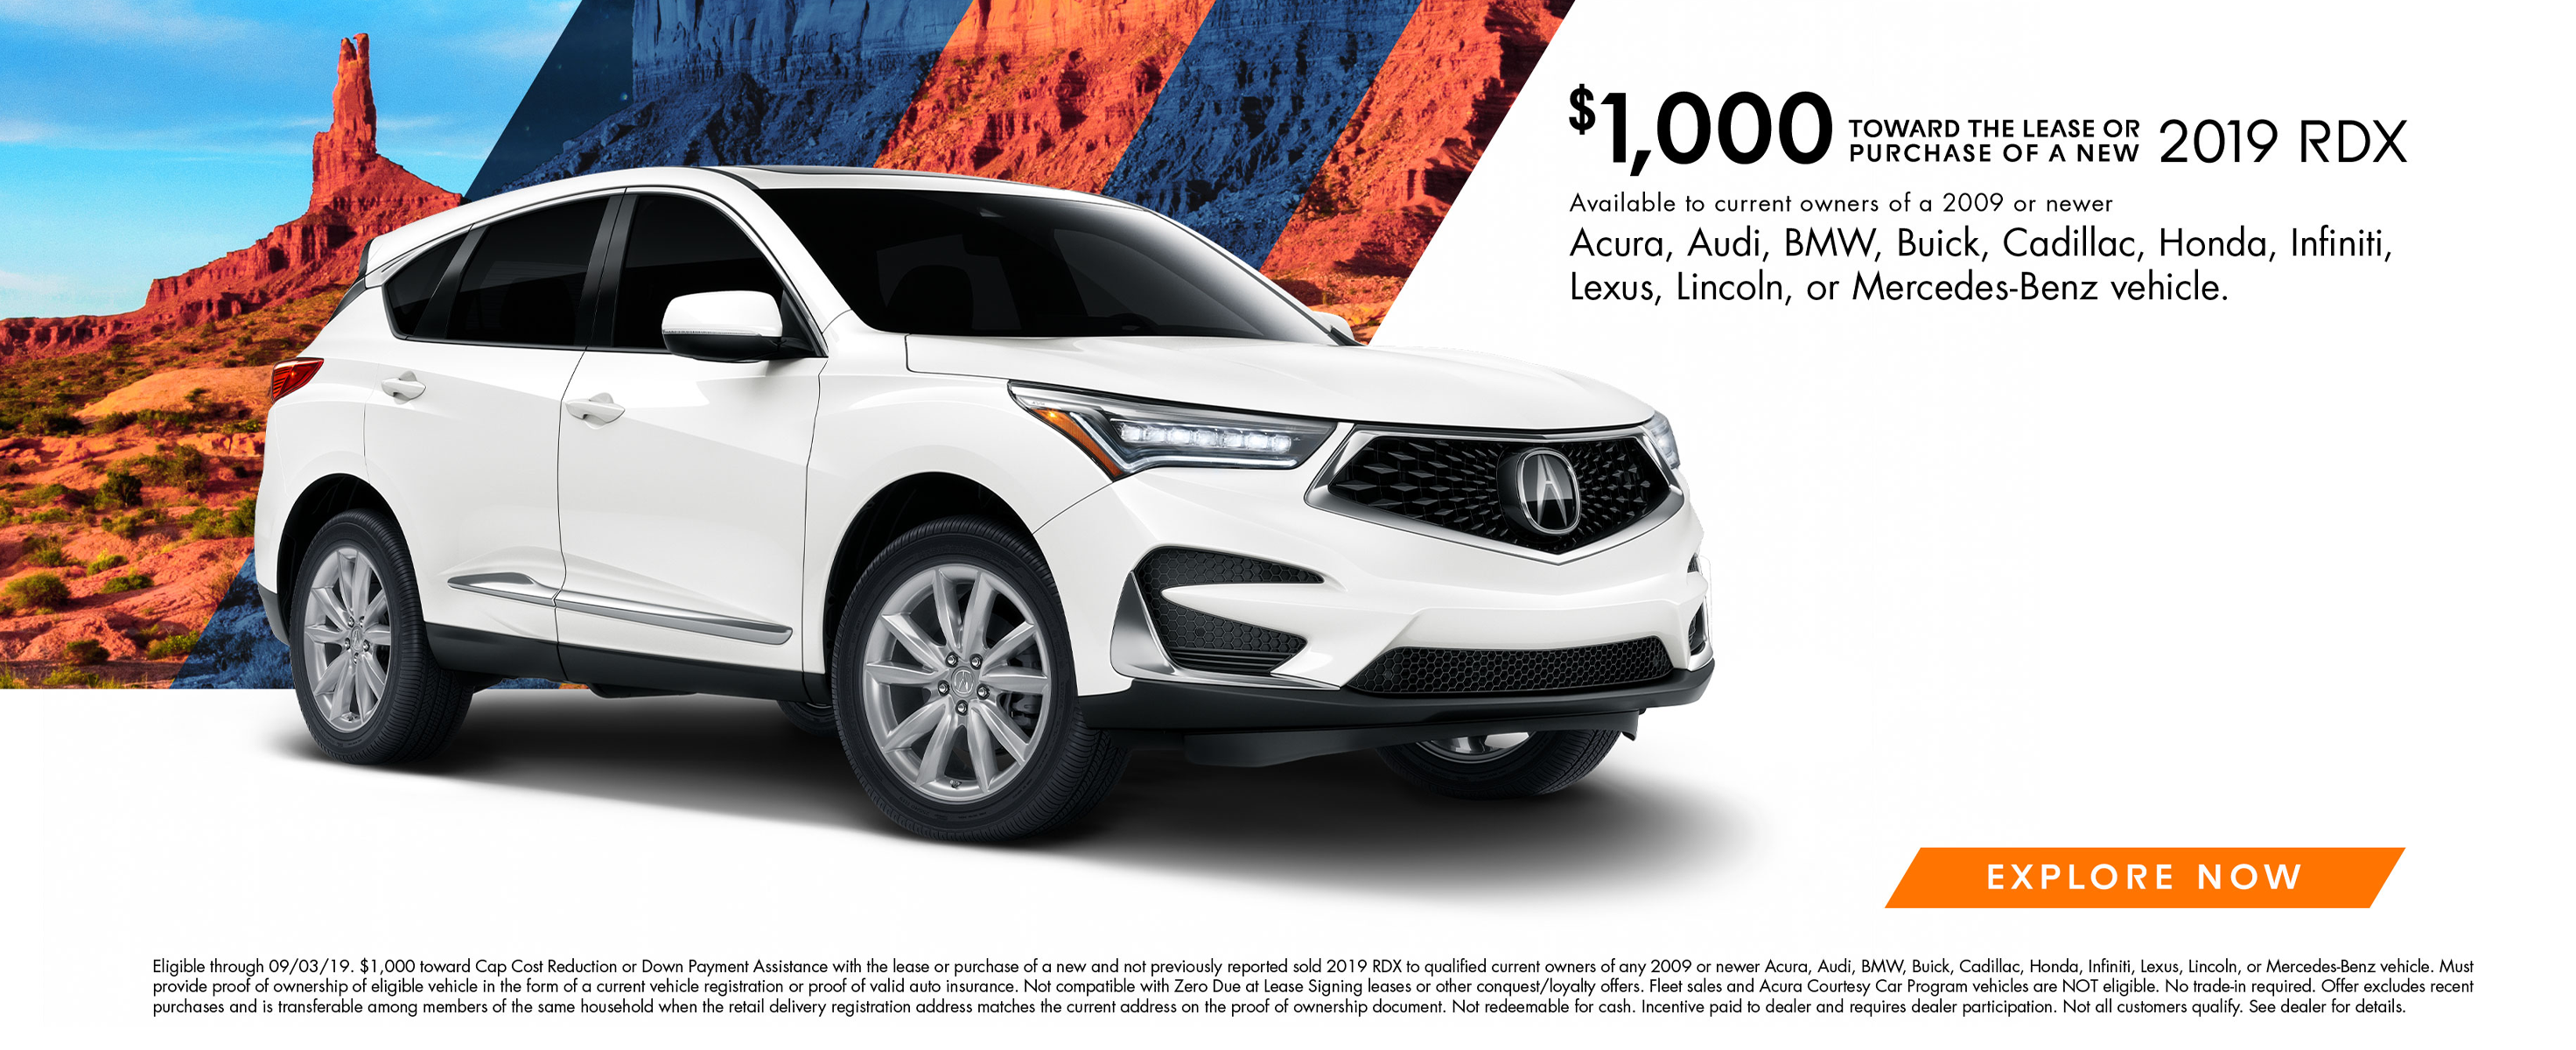 Ft Myersnaples Acura Dealers New Used Cars In Fort Myers >> Naples Acura New Used Car Dealer Fort Myers Lehigh Acres